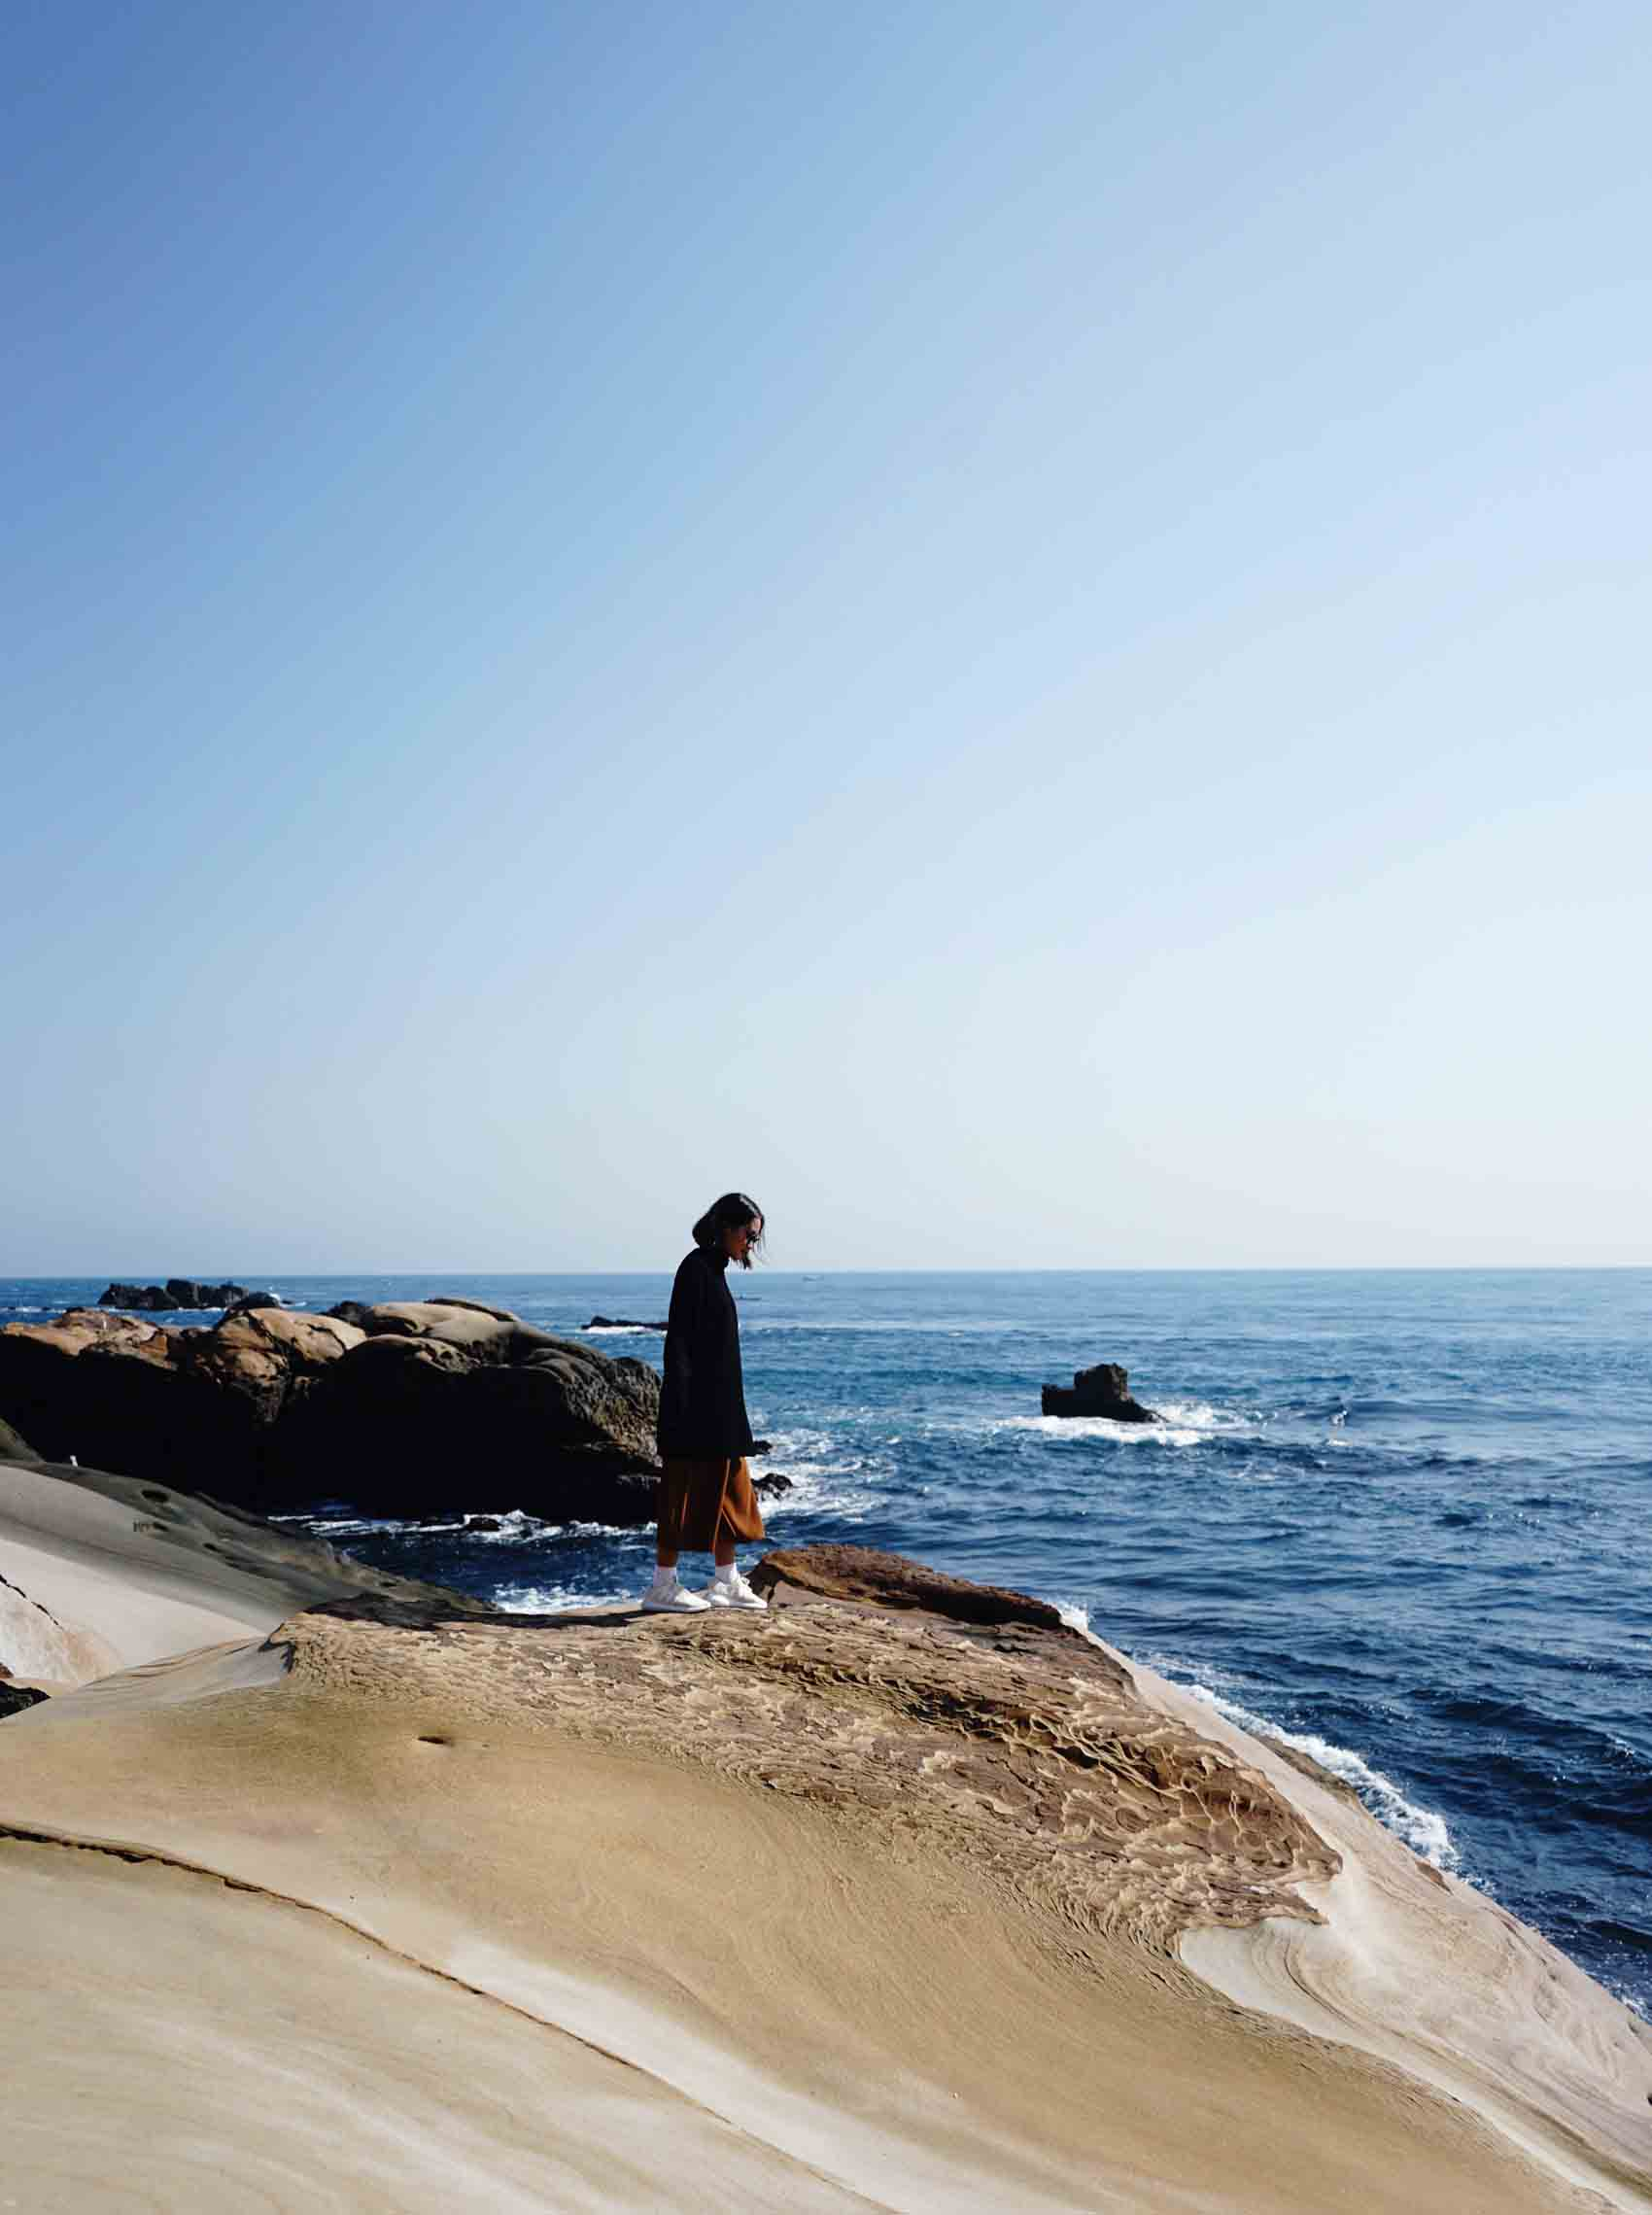 The following day, we went to Yehliu Geopark, which is in the East of Taiwan. It took us maybe an hour to get there and you'll be amazed at all the rock formations you see! Best time is to go during the morning so there won't be as many people yet inside the park.